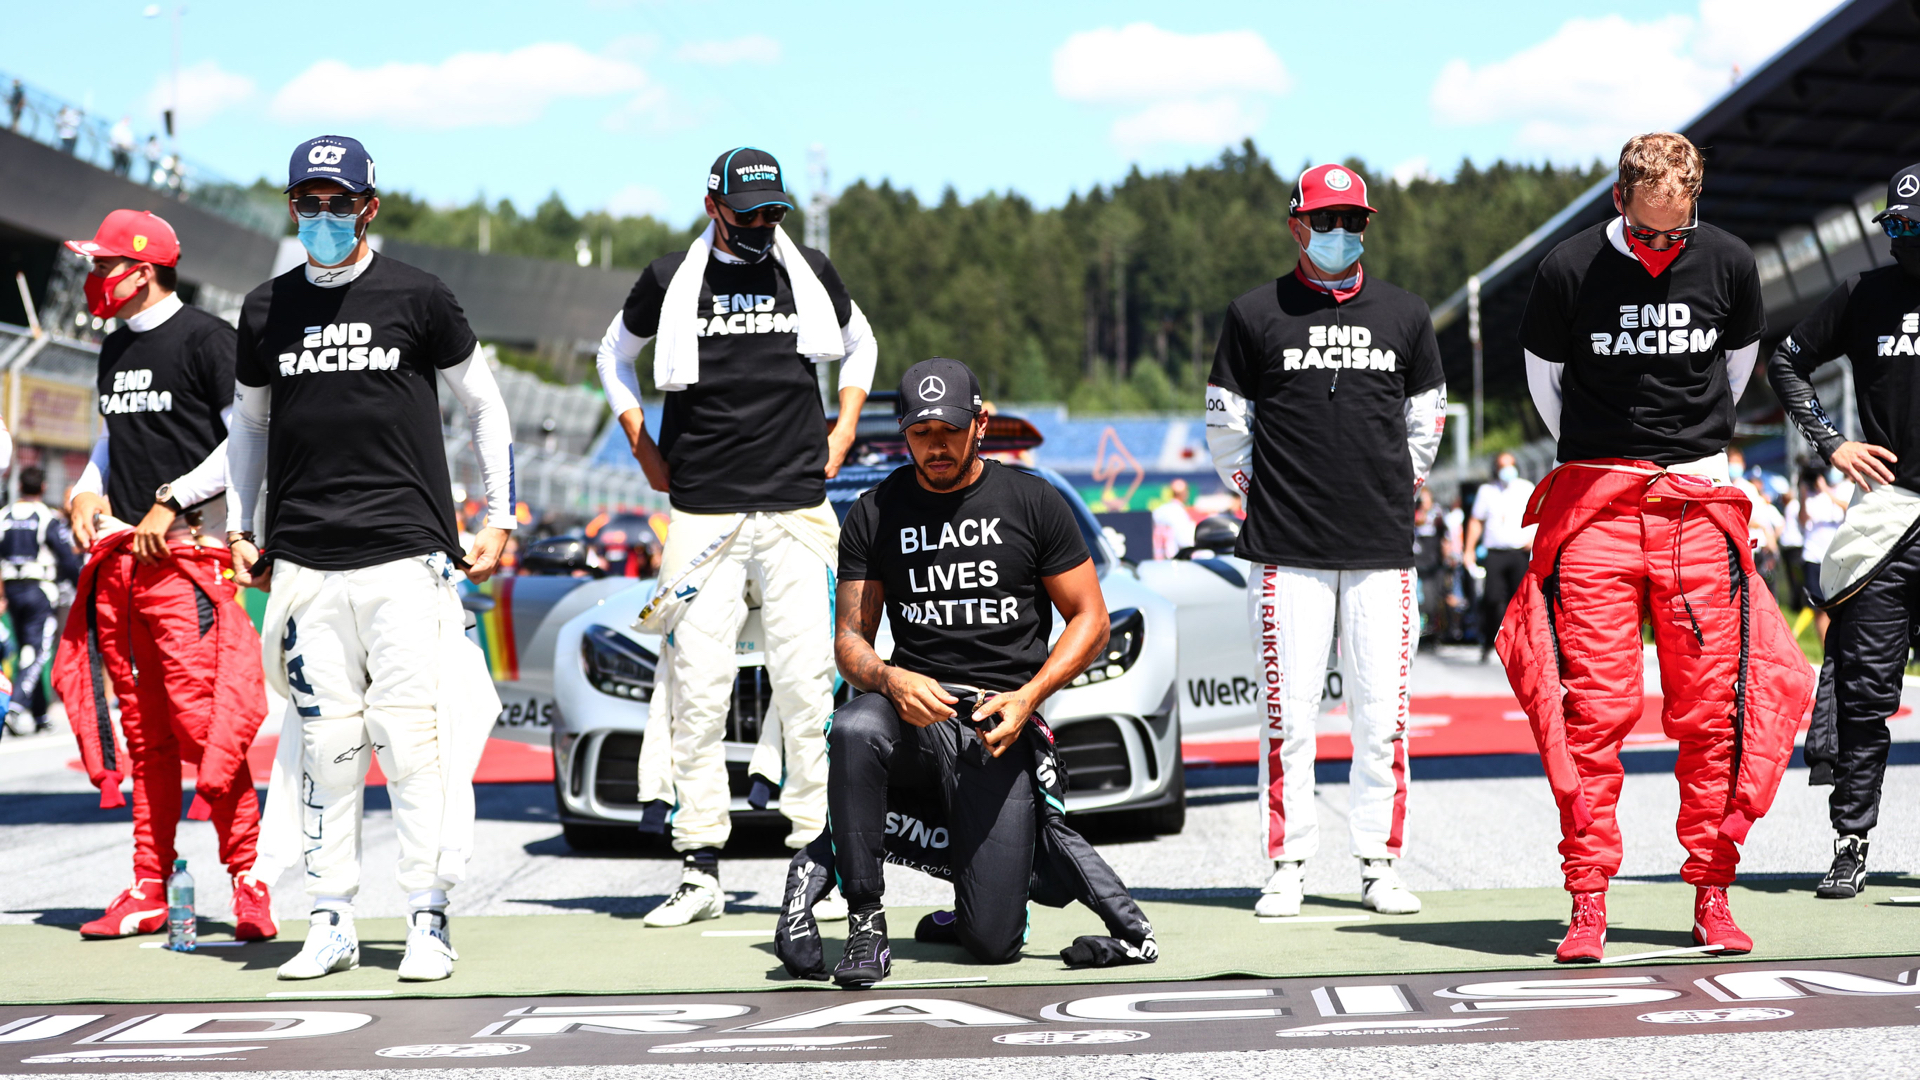 F1 drivers split over anthem kneeling, how to fight racism: 'Silence is generally complicit' 1